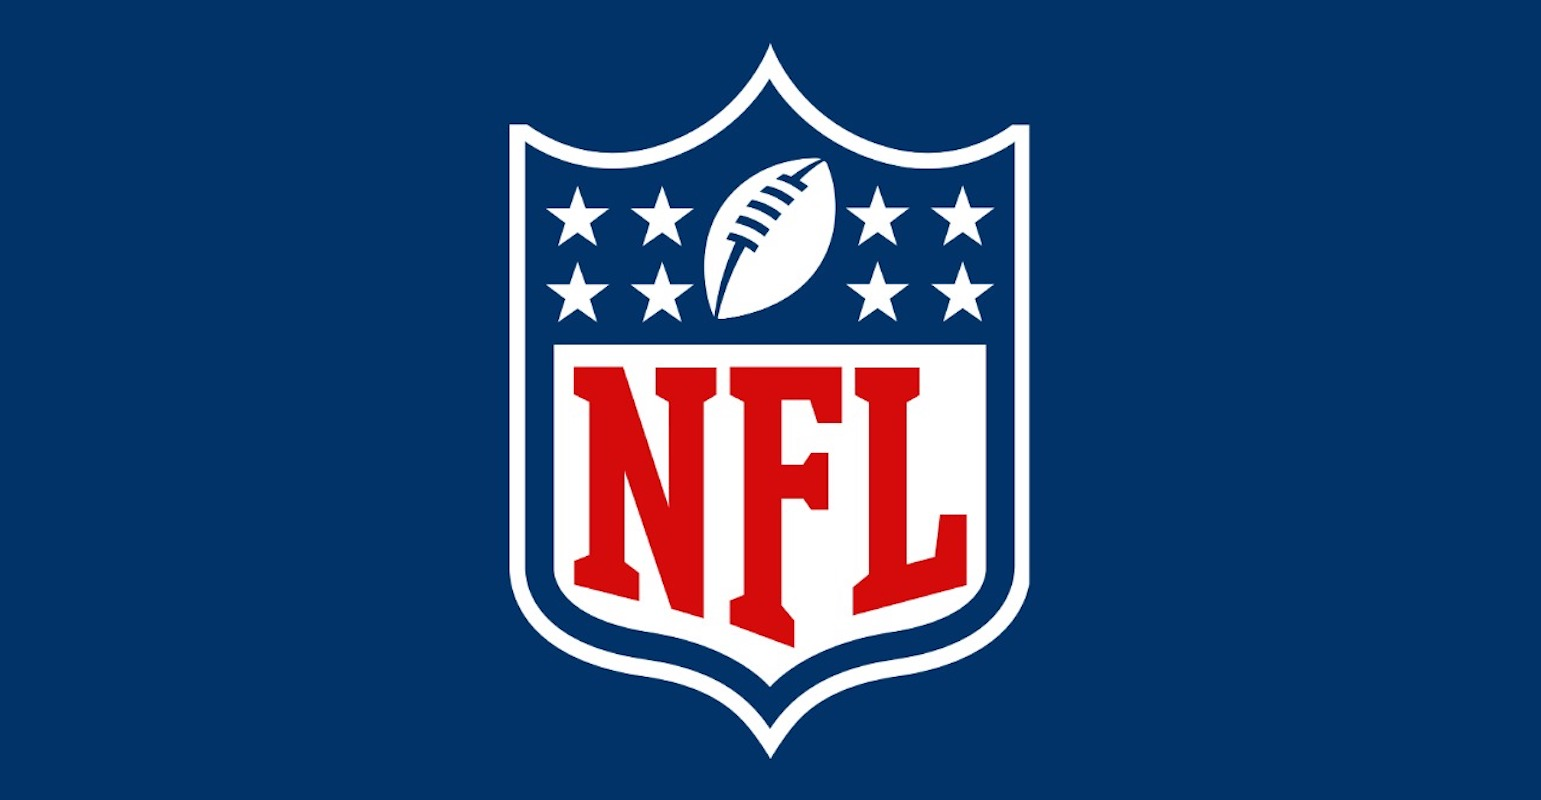 The Odds Of Making It To The NFL